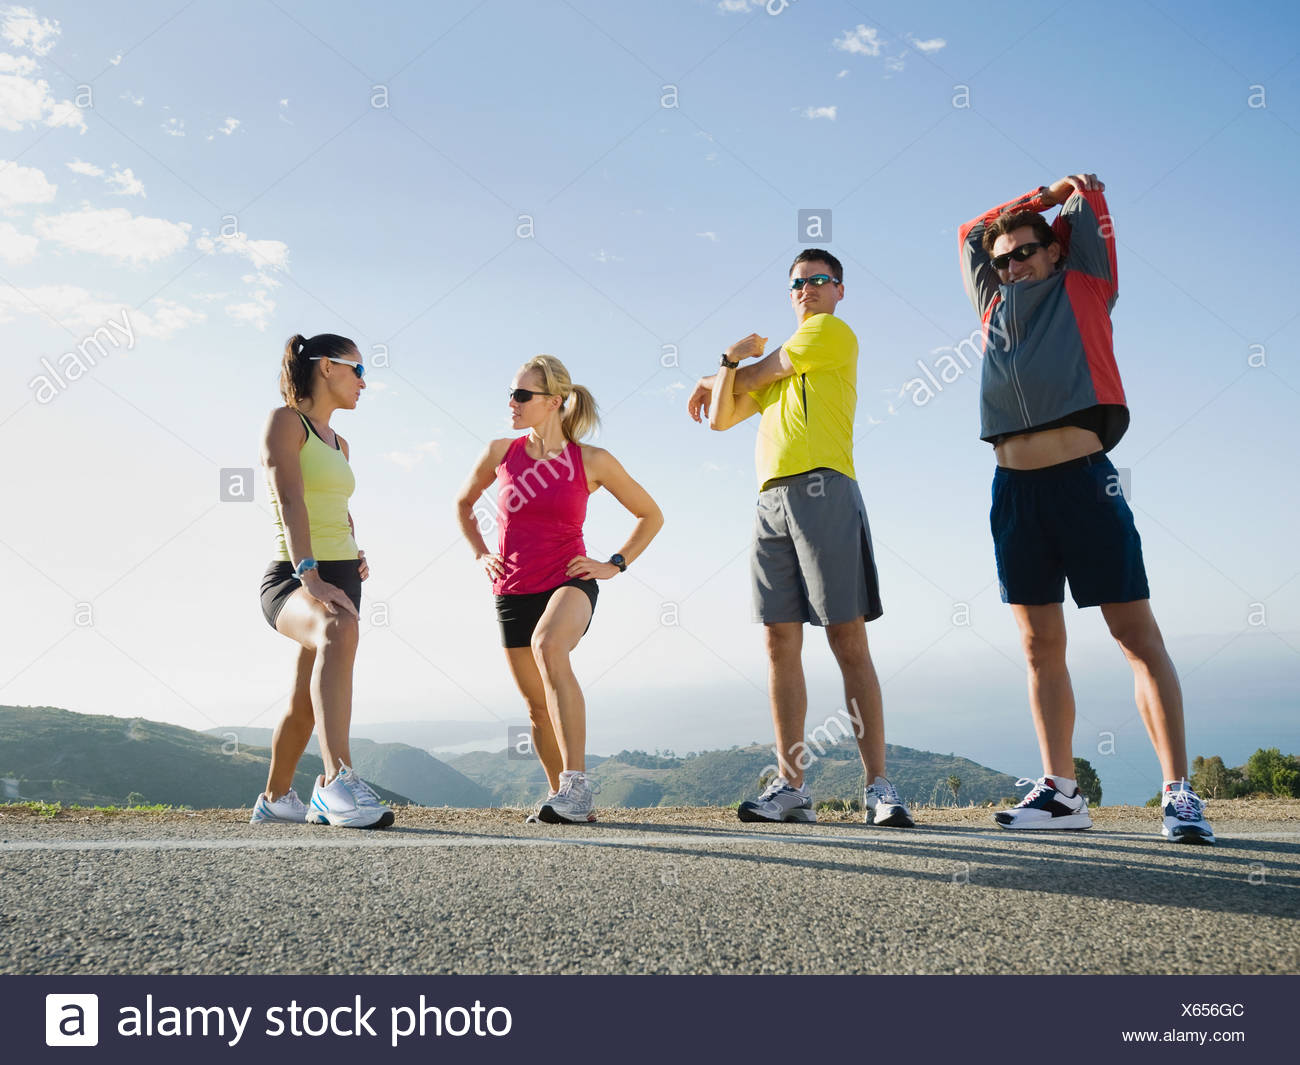 Runners stretching on the side of the road - Stock Image